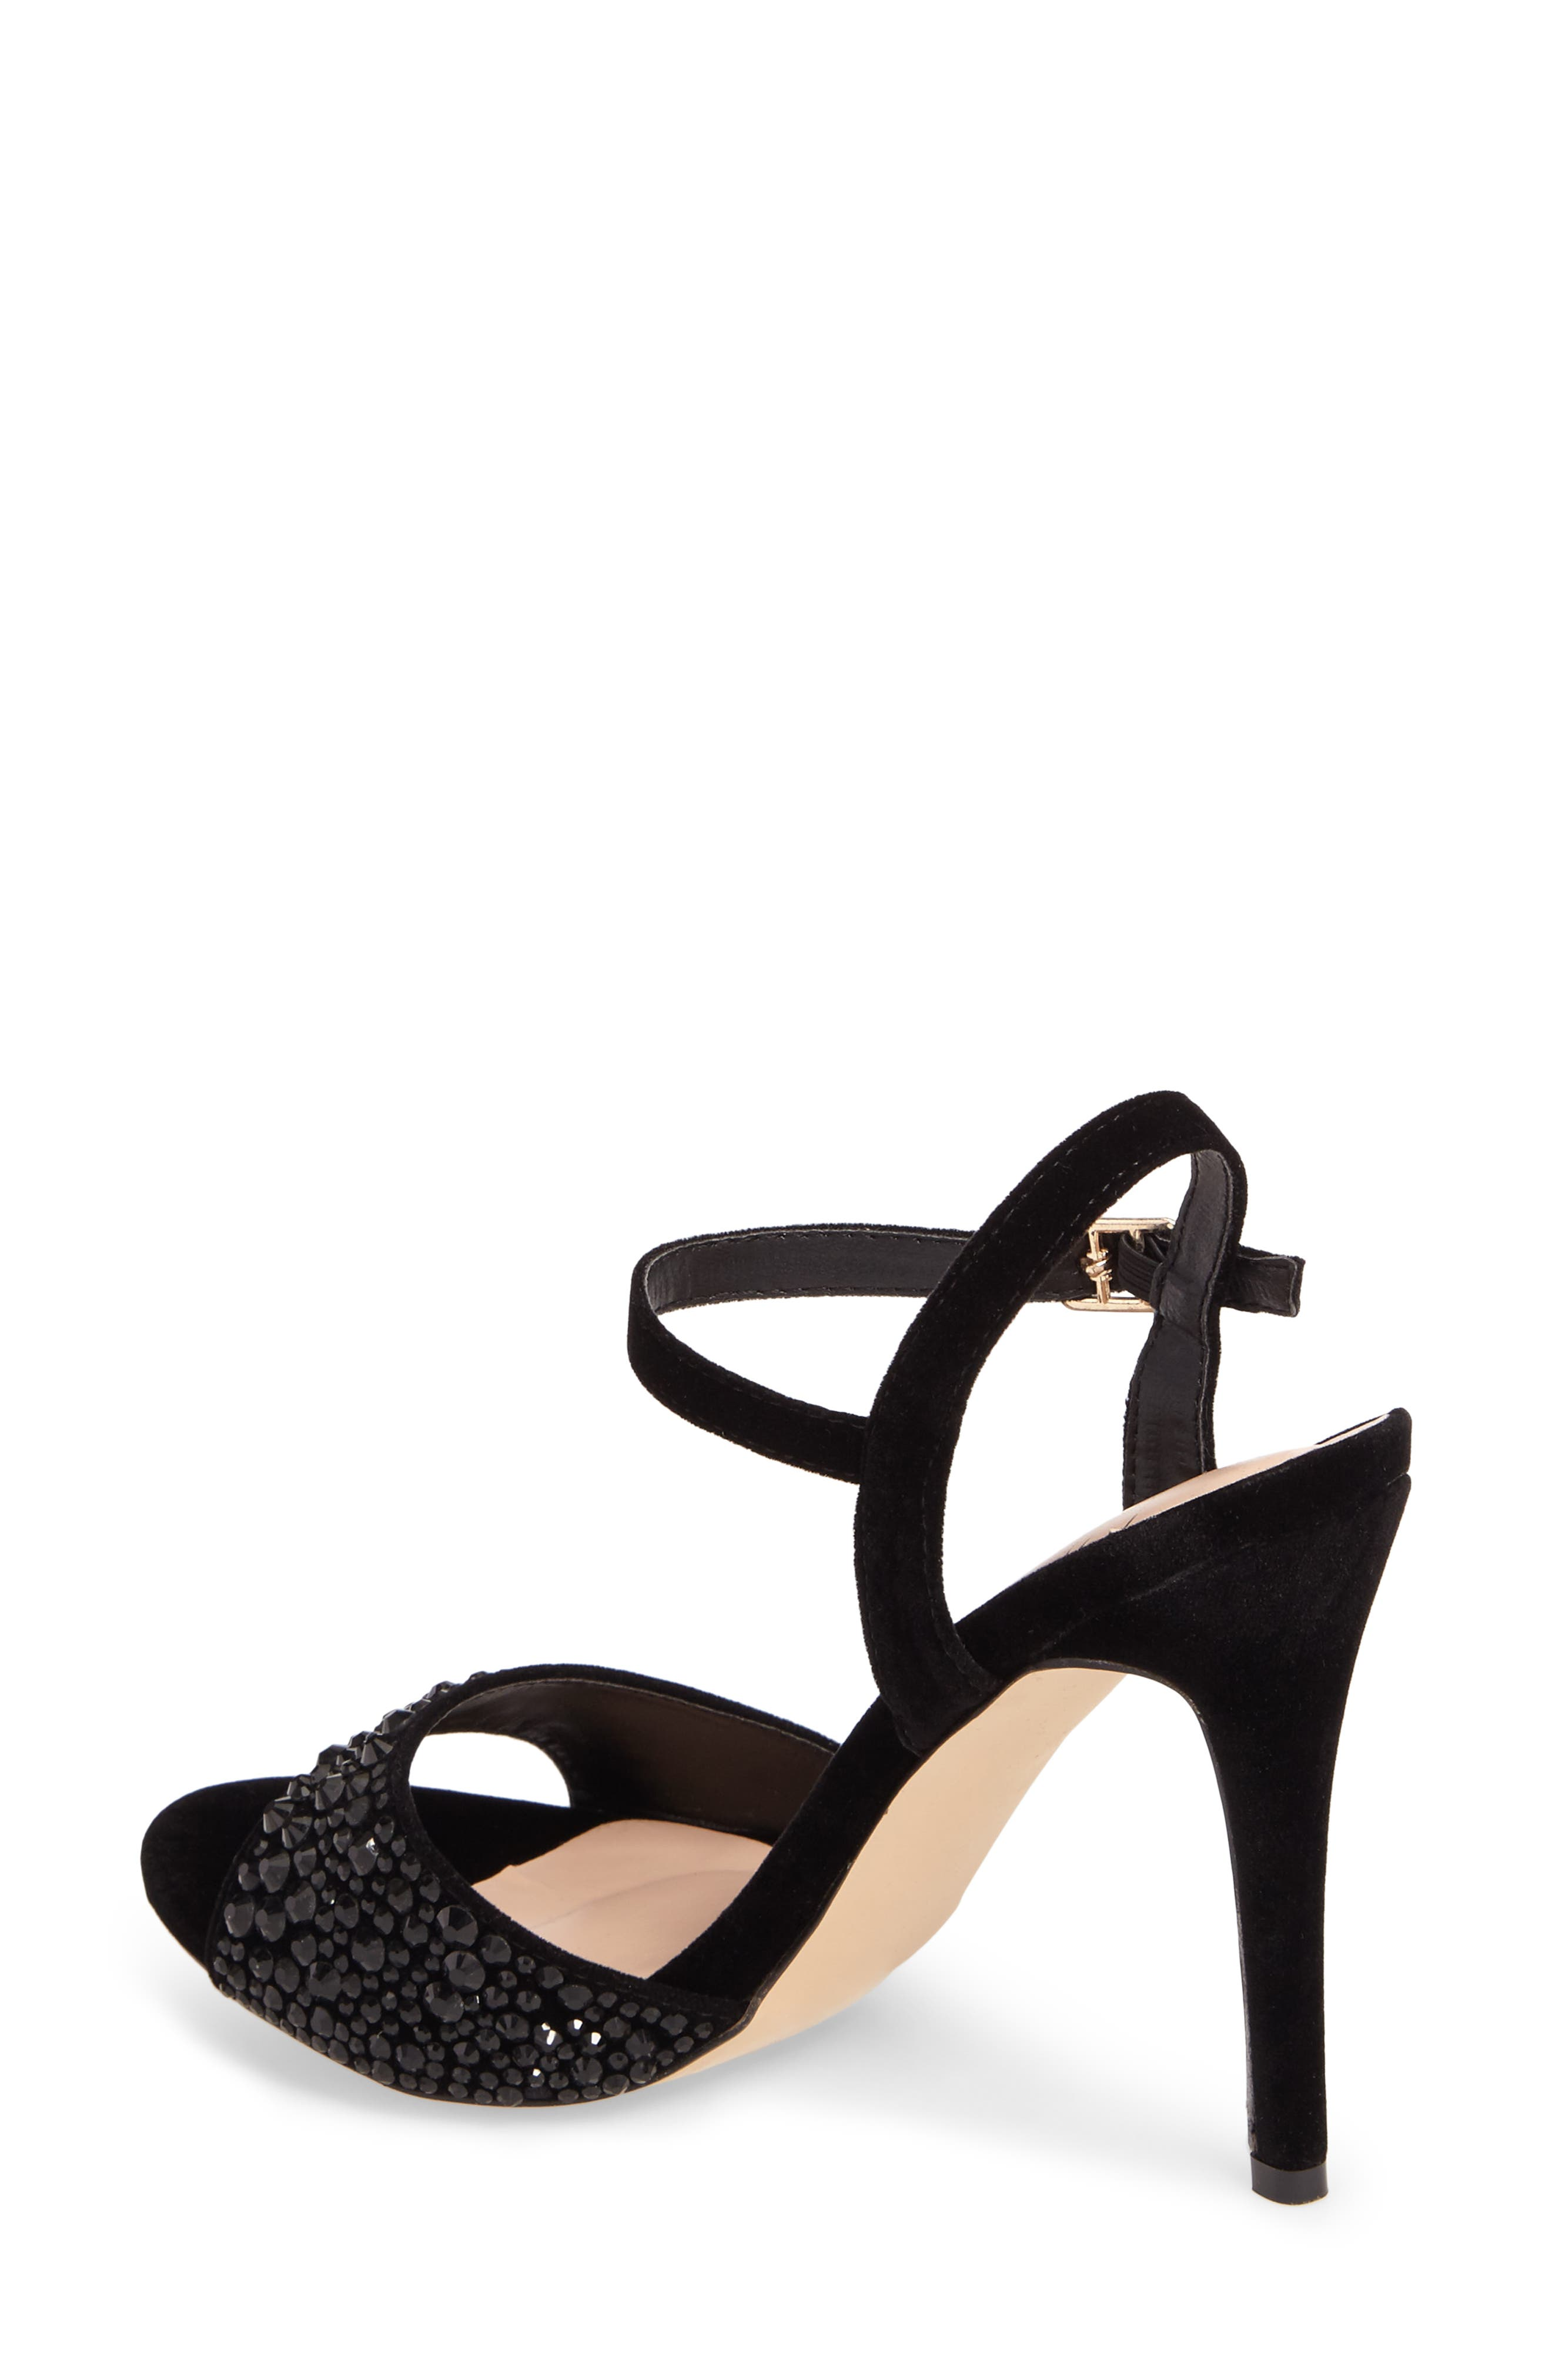 Marti Embellished Sandal,                             Alternate thumbnail 2, color,                             Black Fabric